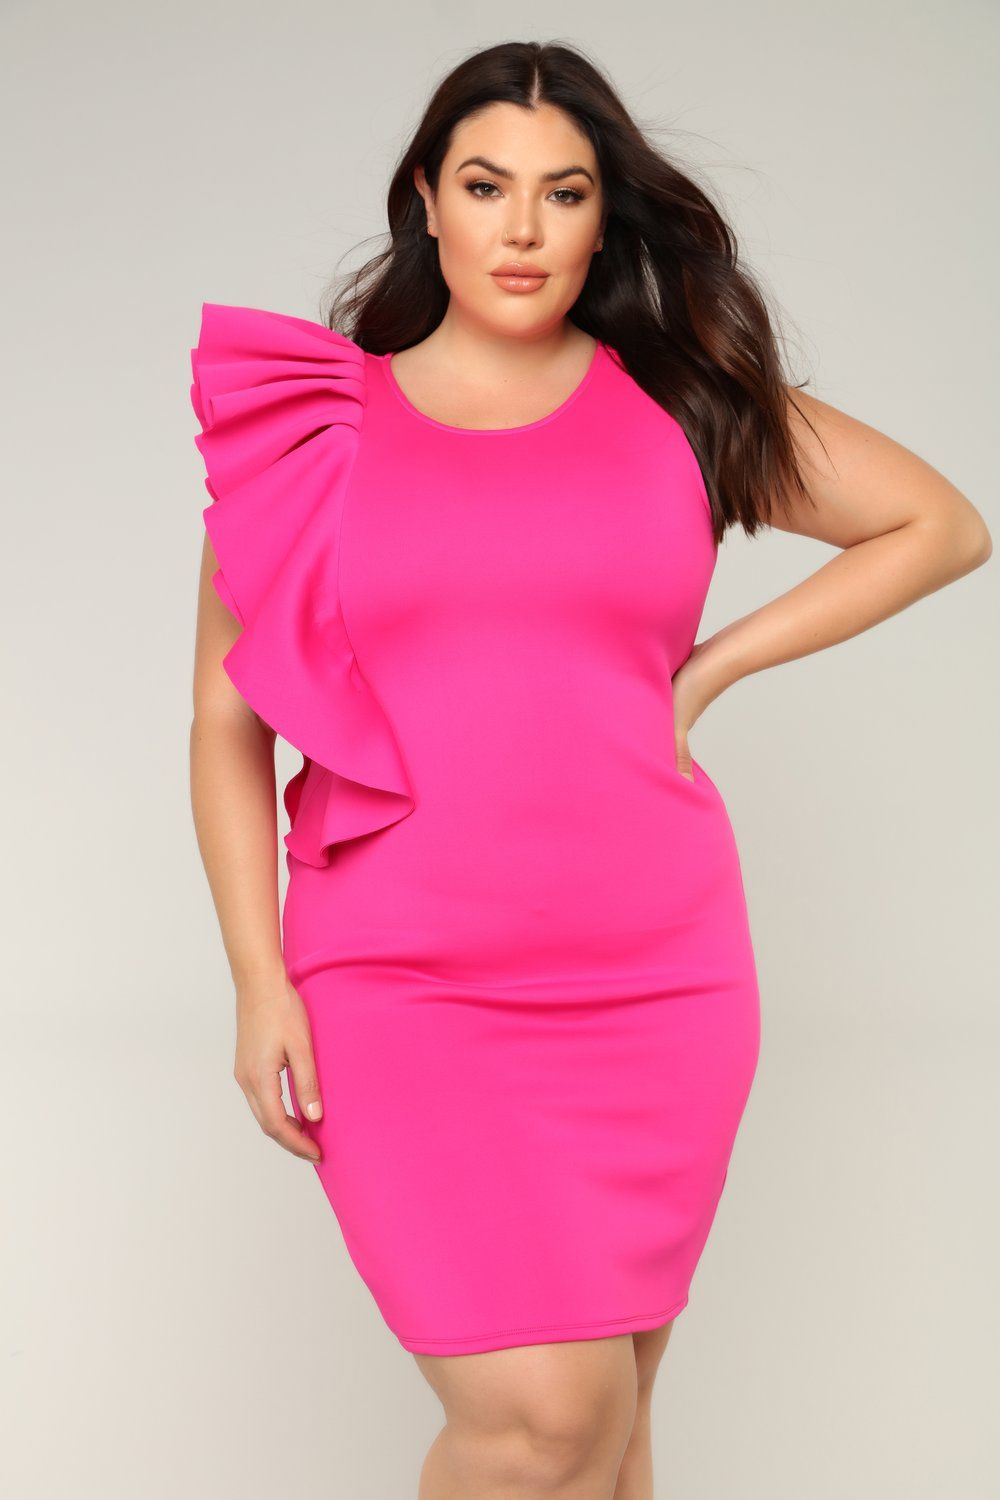 One Sided Love Ruffle Dress - Hot Pink in 2019 | Date Night/Event ...